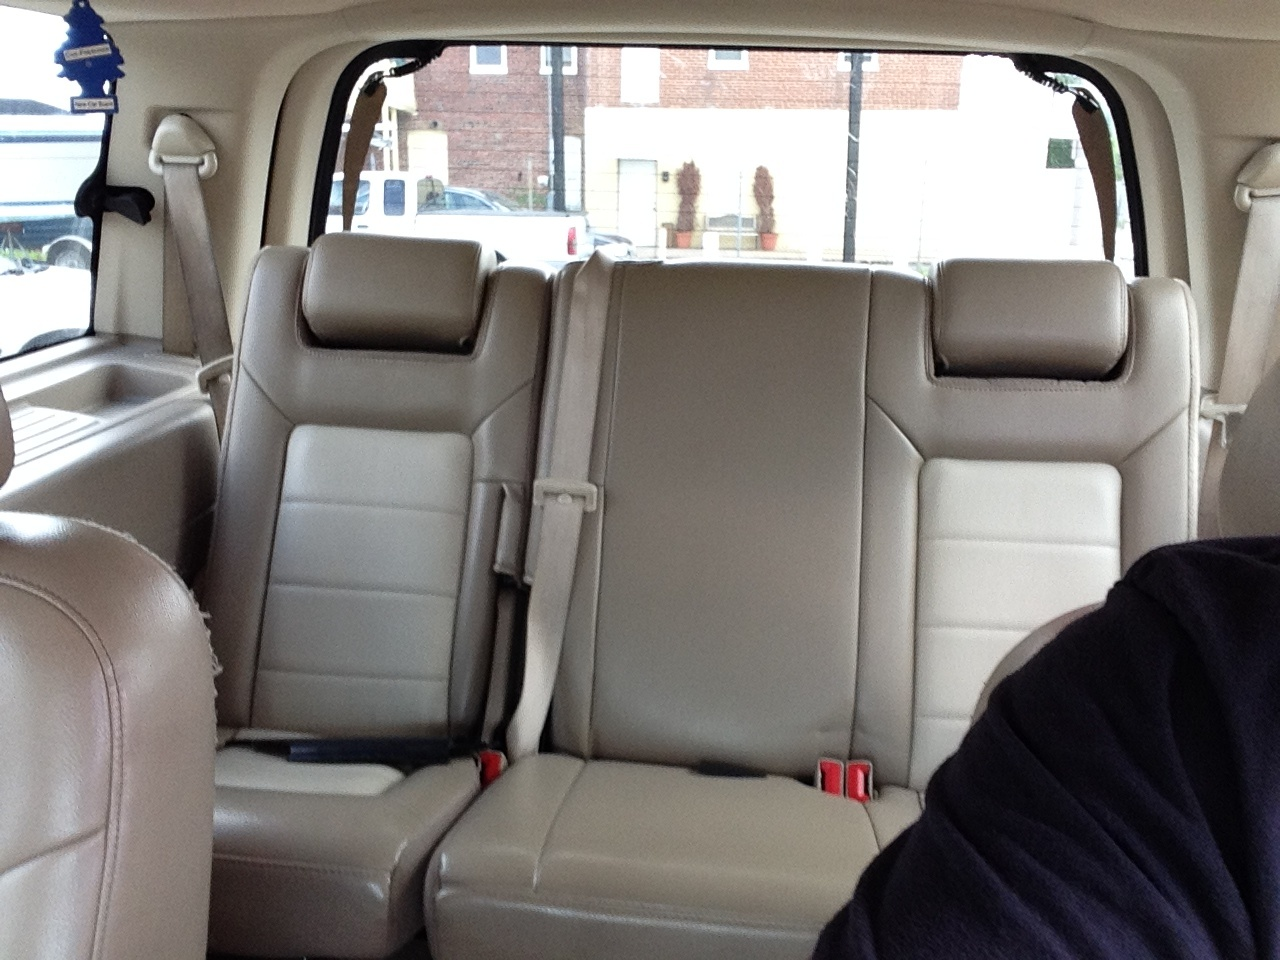 2005 Ford Expedition - Pictures